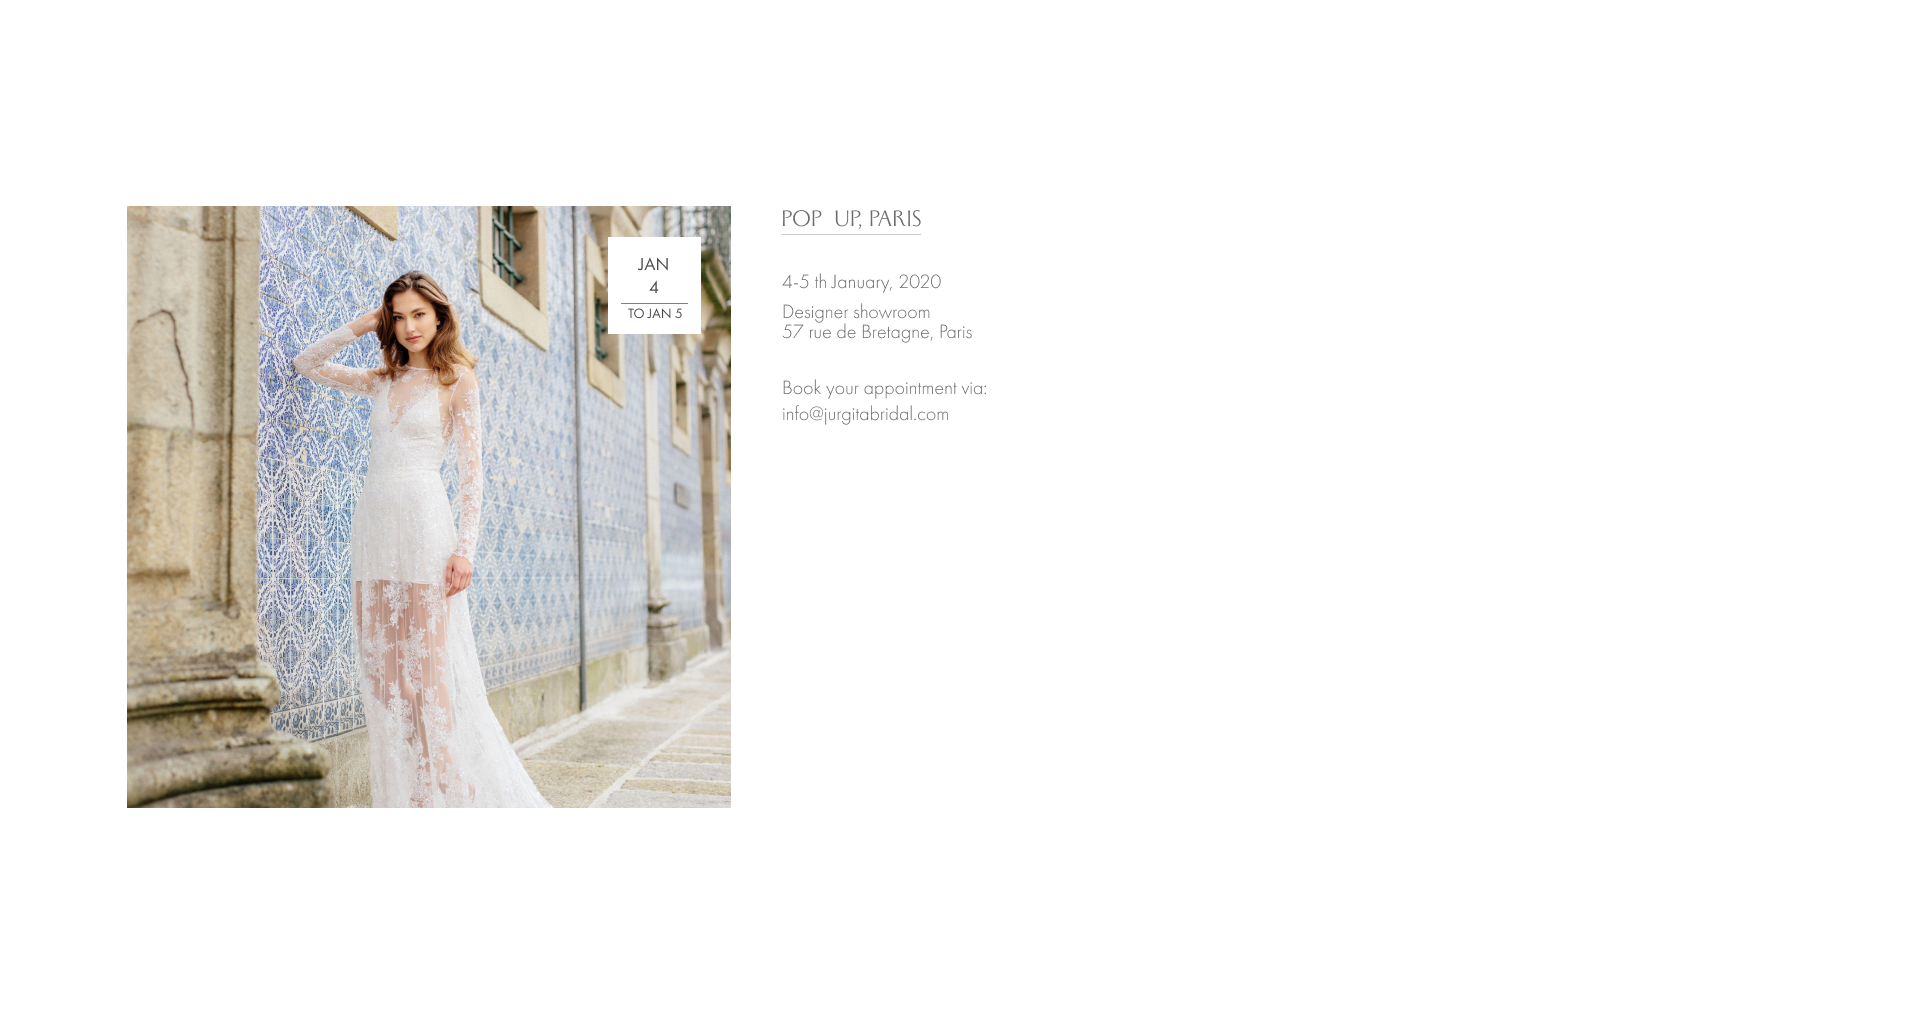 pop up Paris Jurgita Bridal